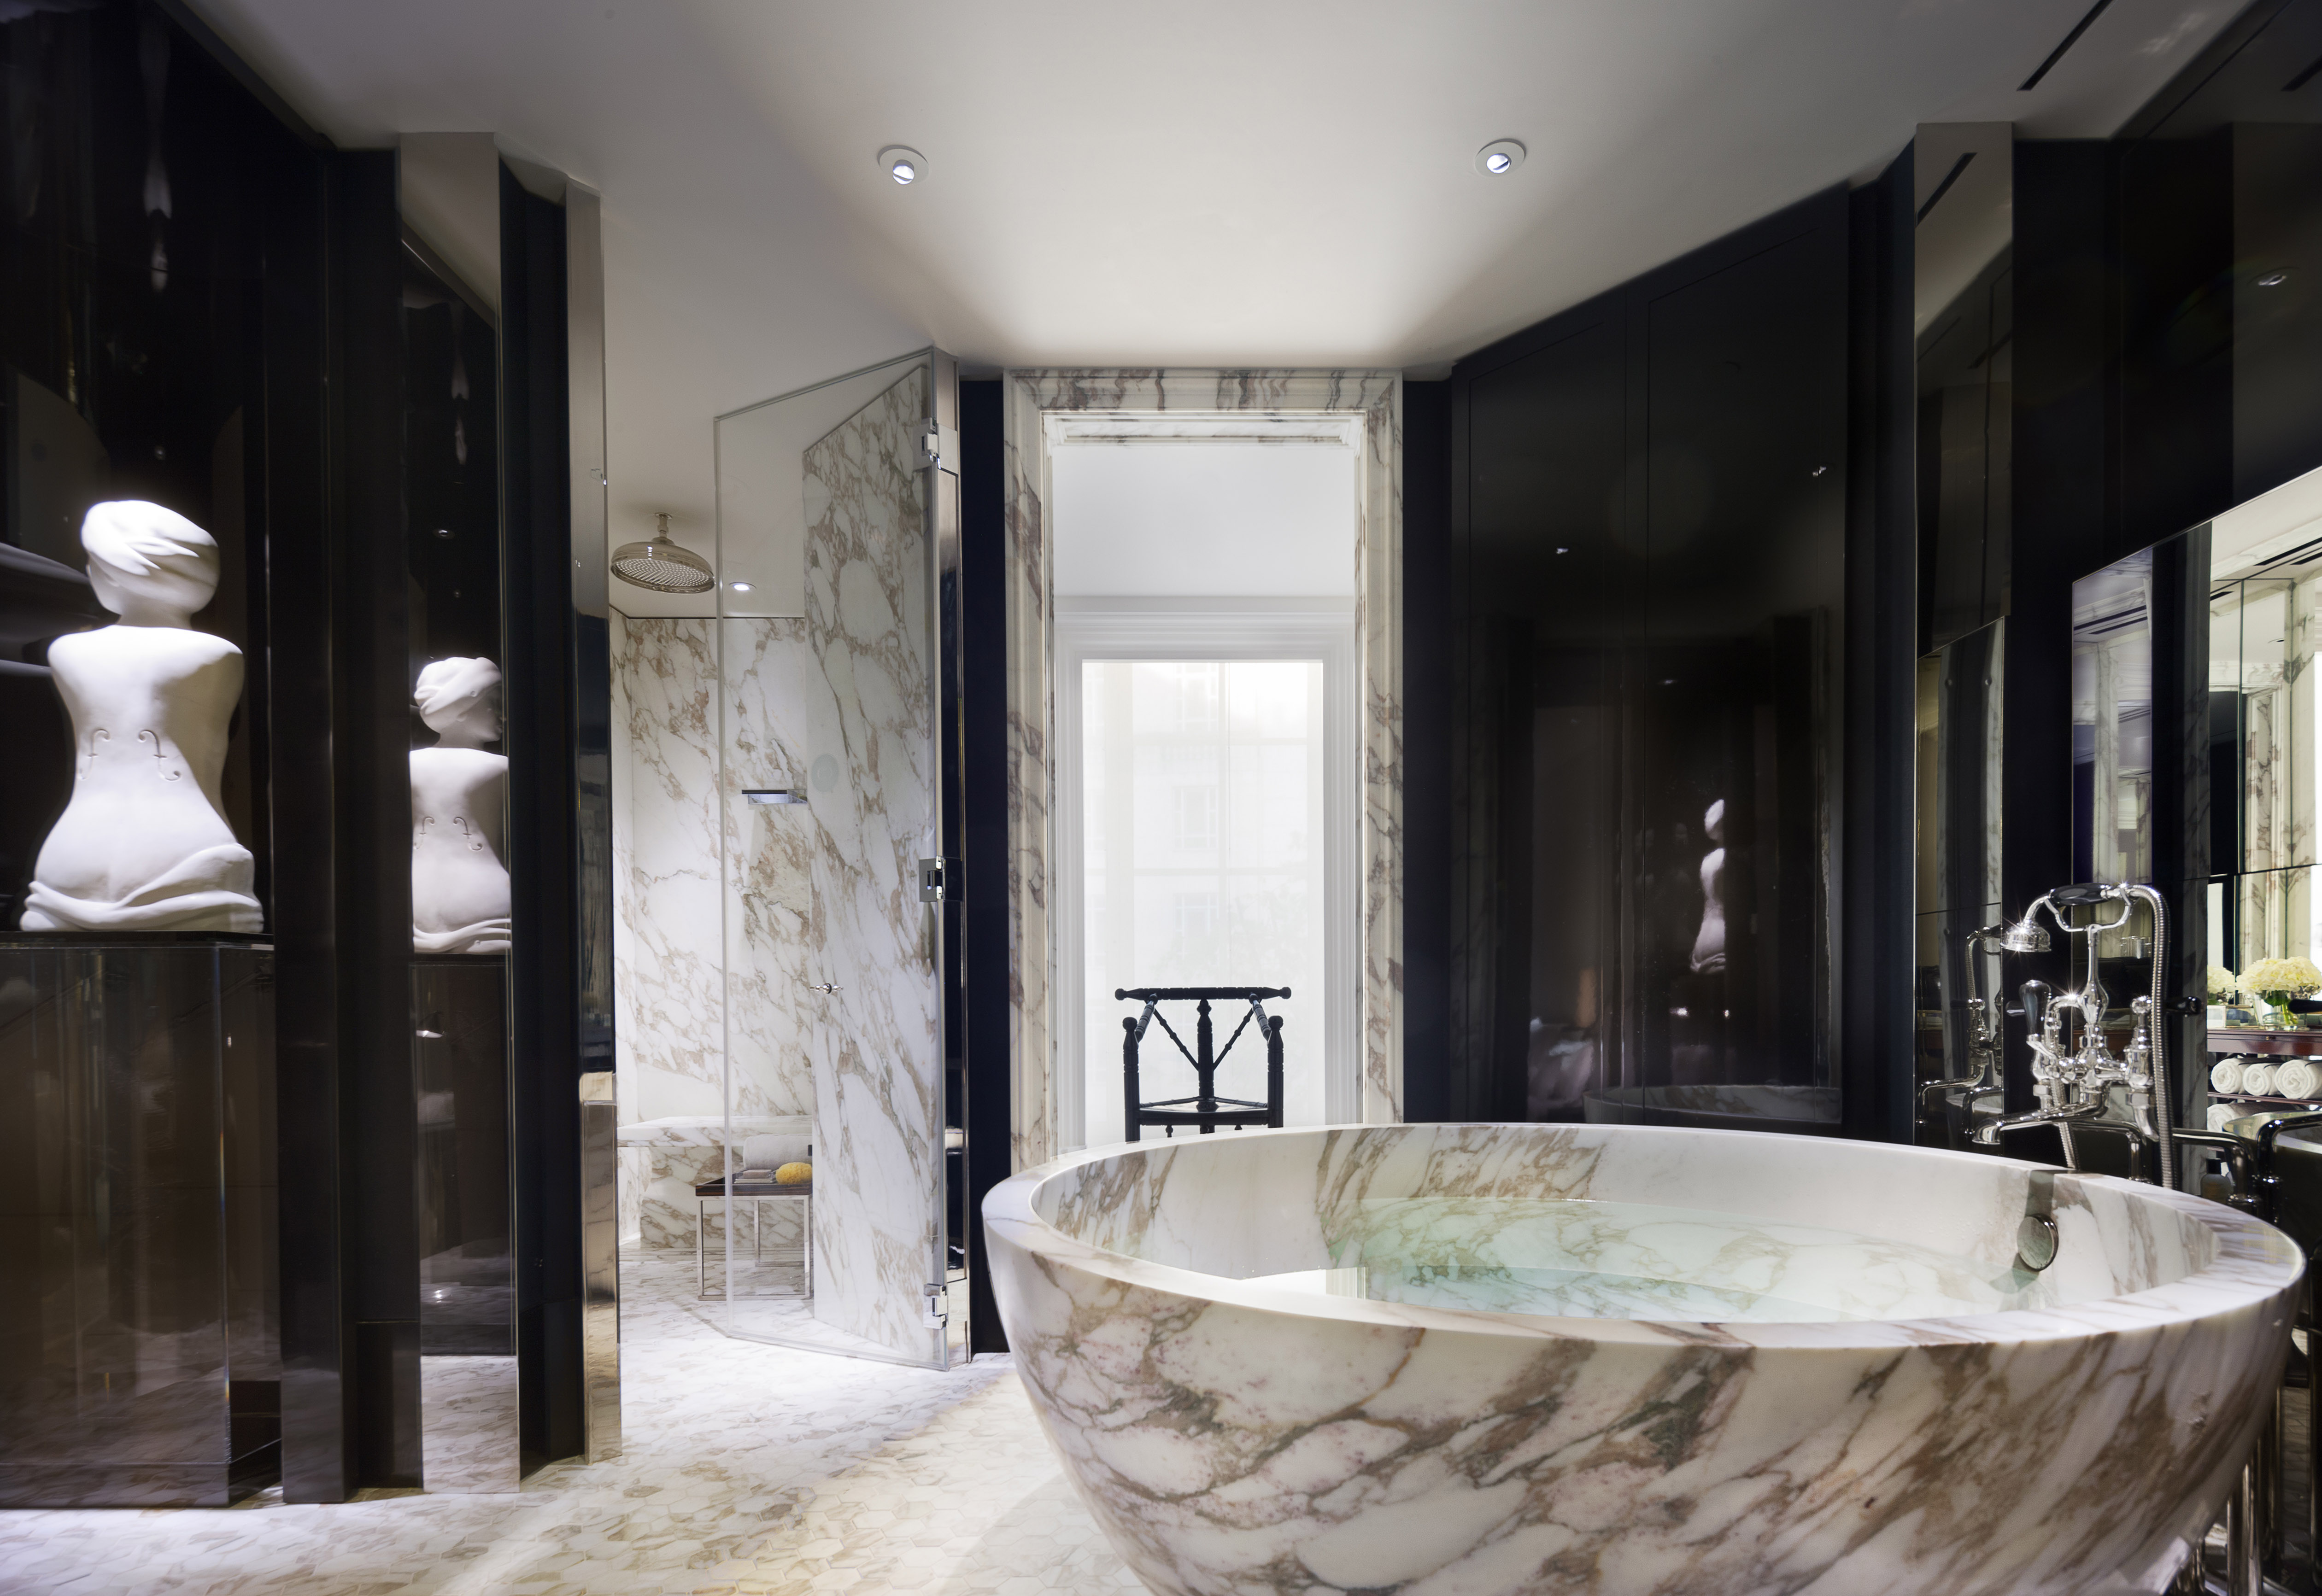 Rosewood london thedesignair for Bathroom interior design london